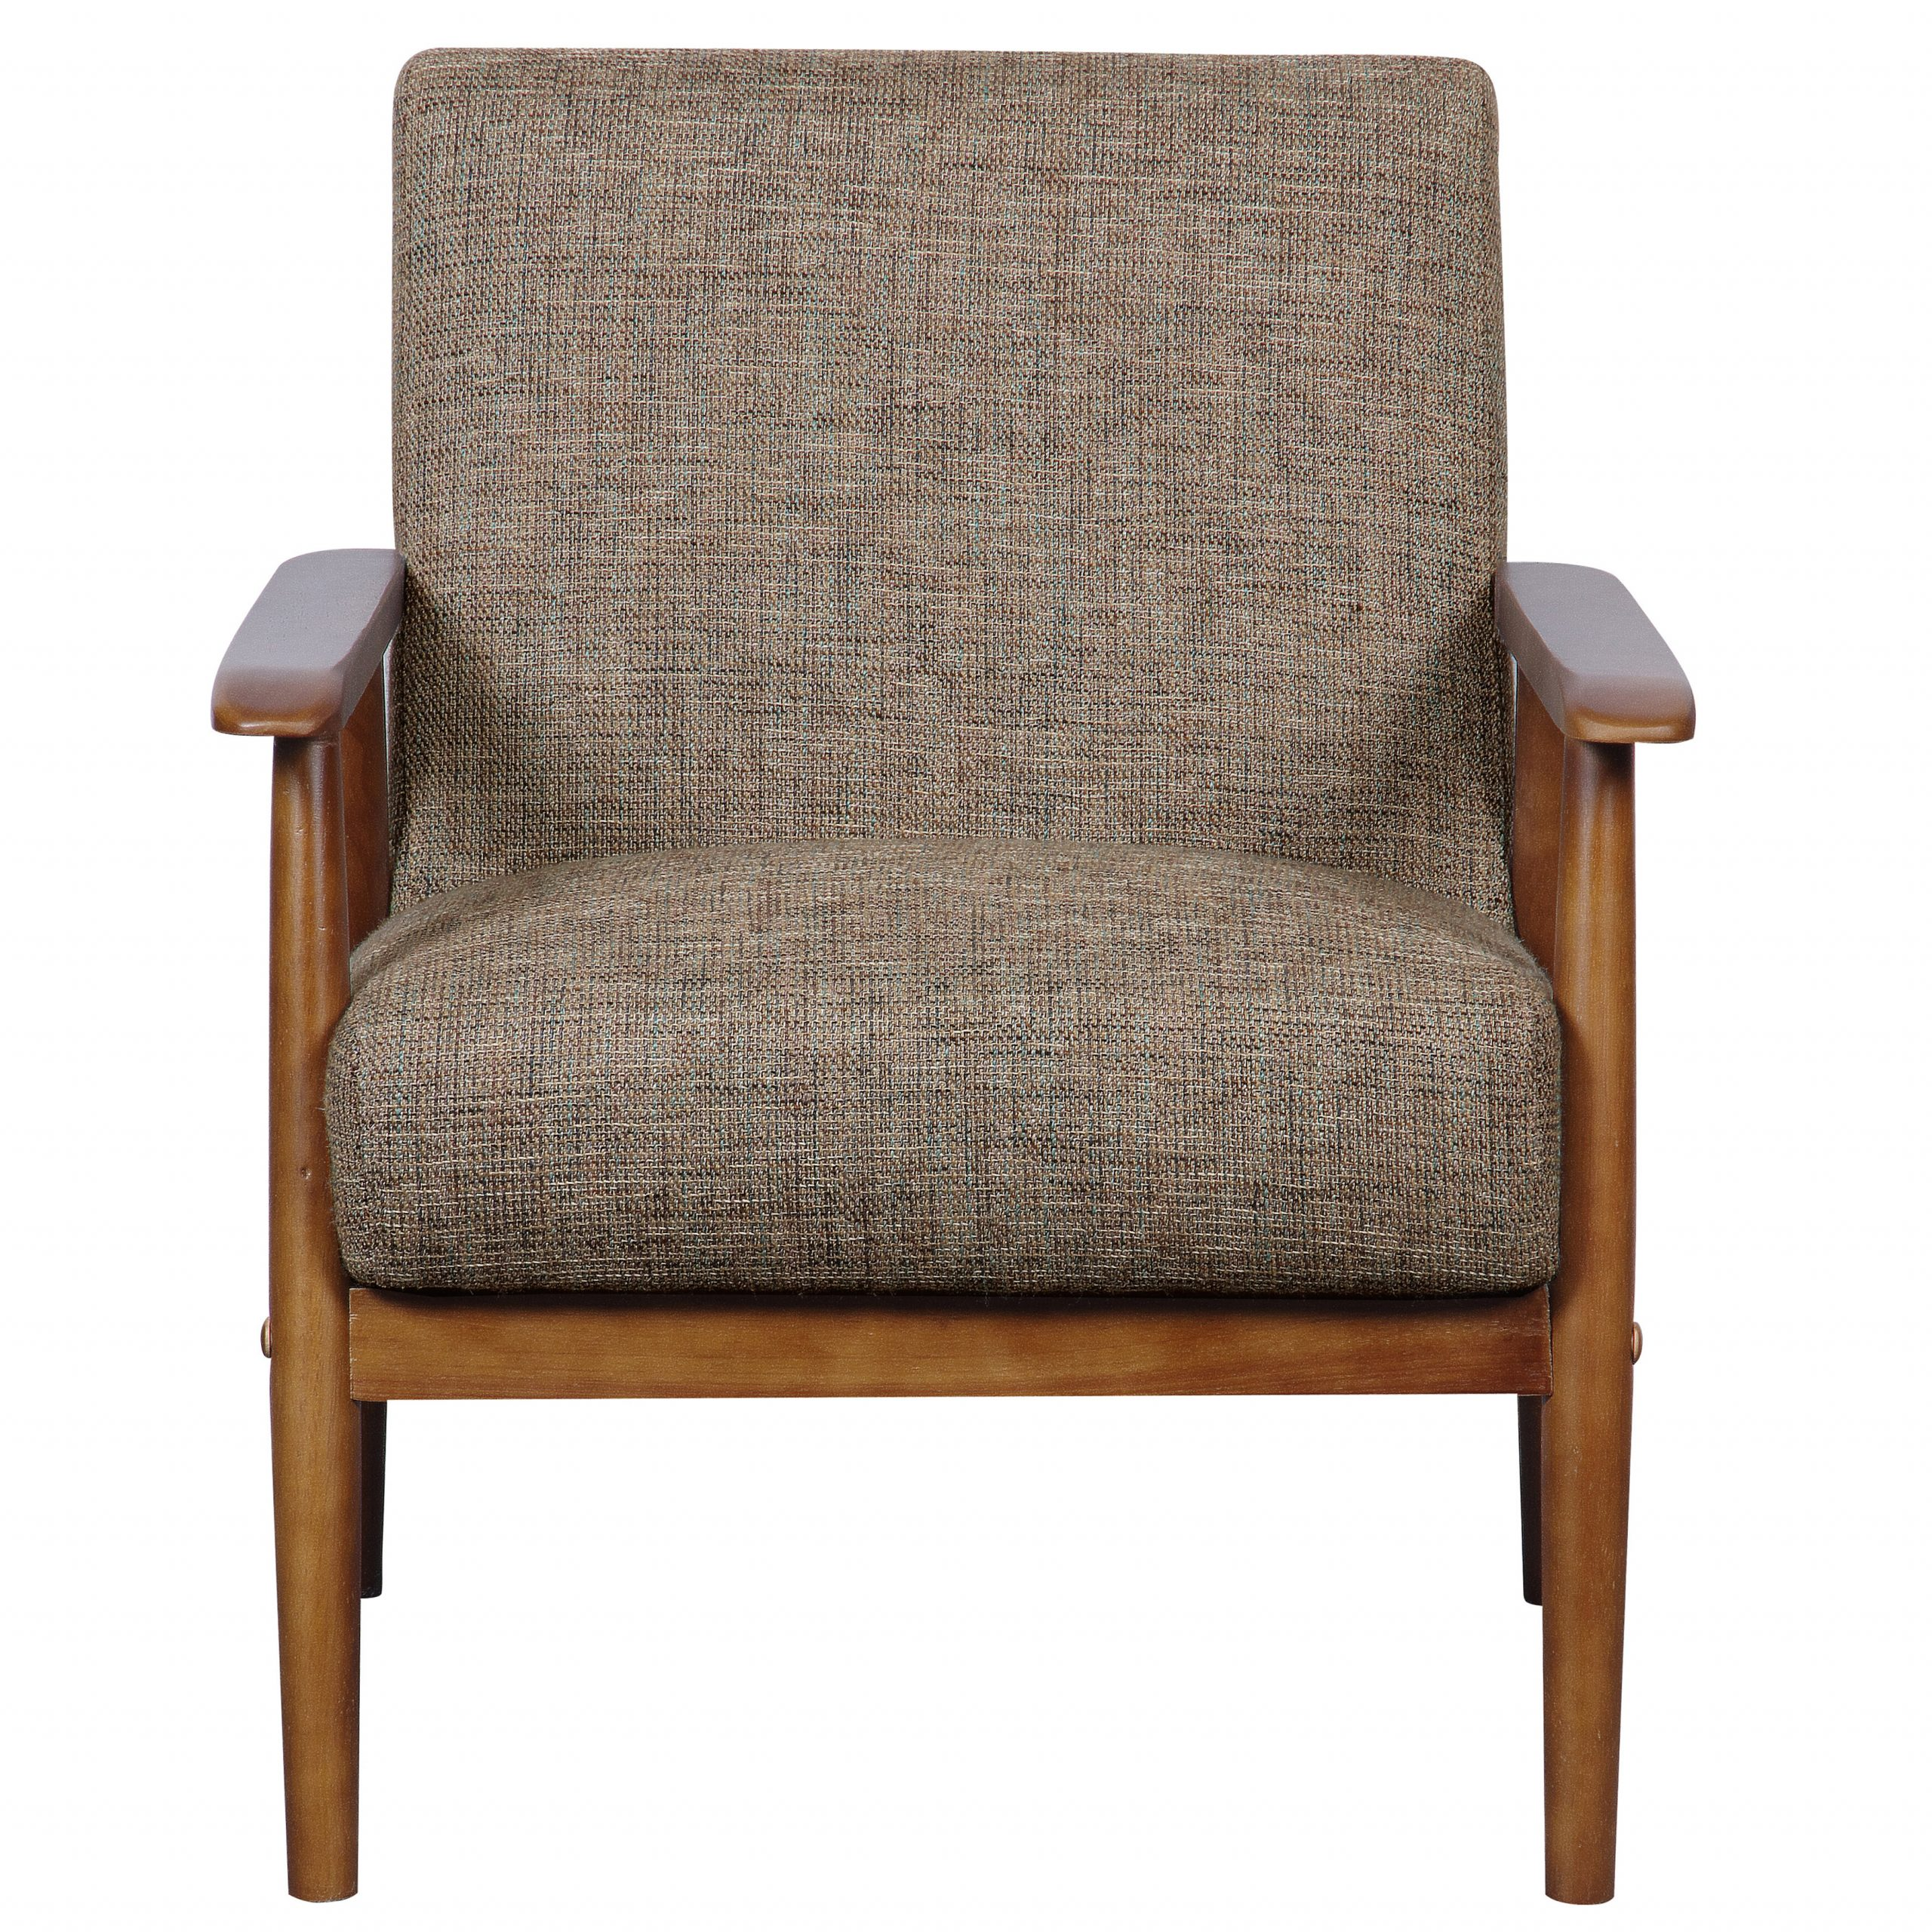 Widely Used Barnard Polyester Barrel Chairs Within Derryaghy Armchair (View 11 of 20)